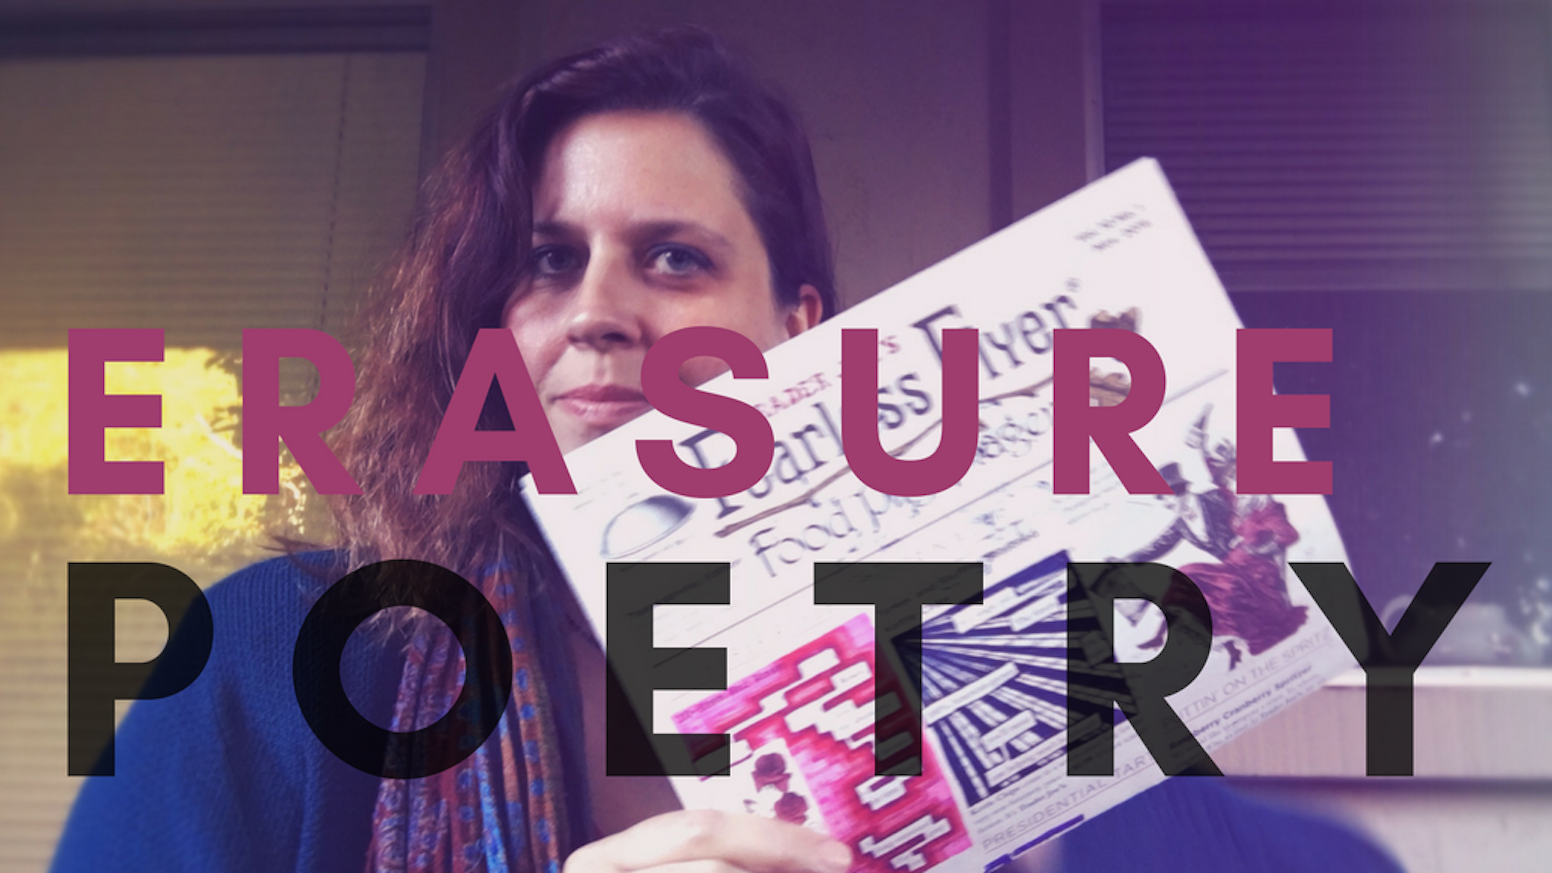 A 40-page, full color chapbook of erasure poetry.